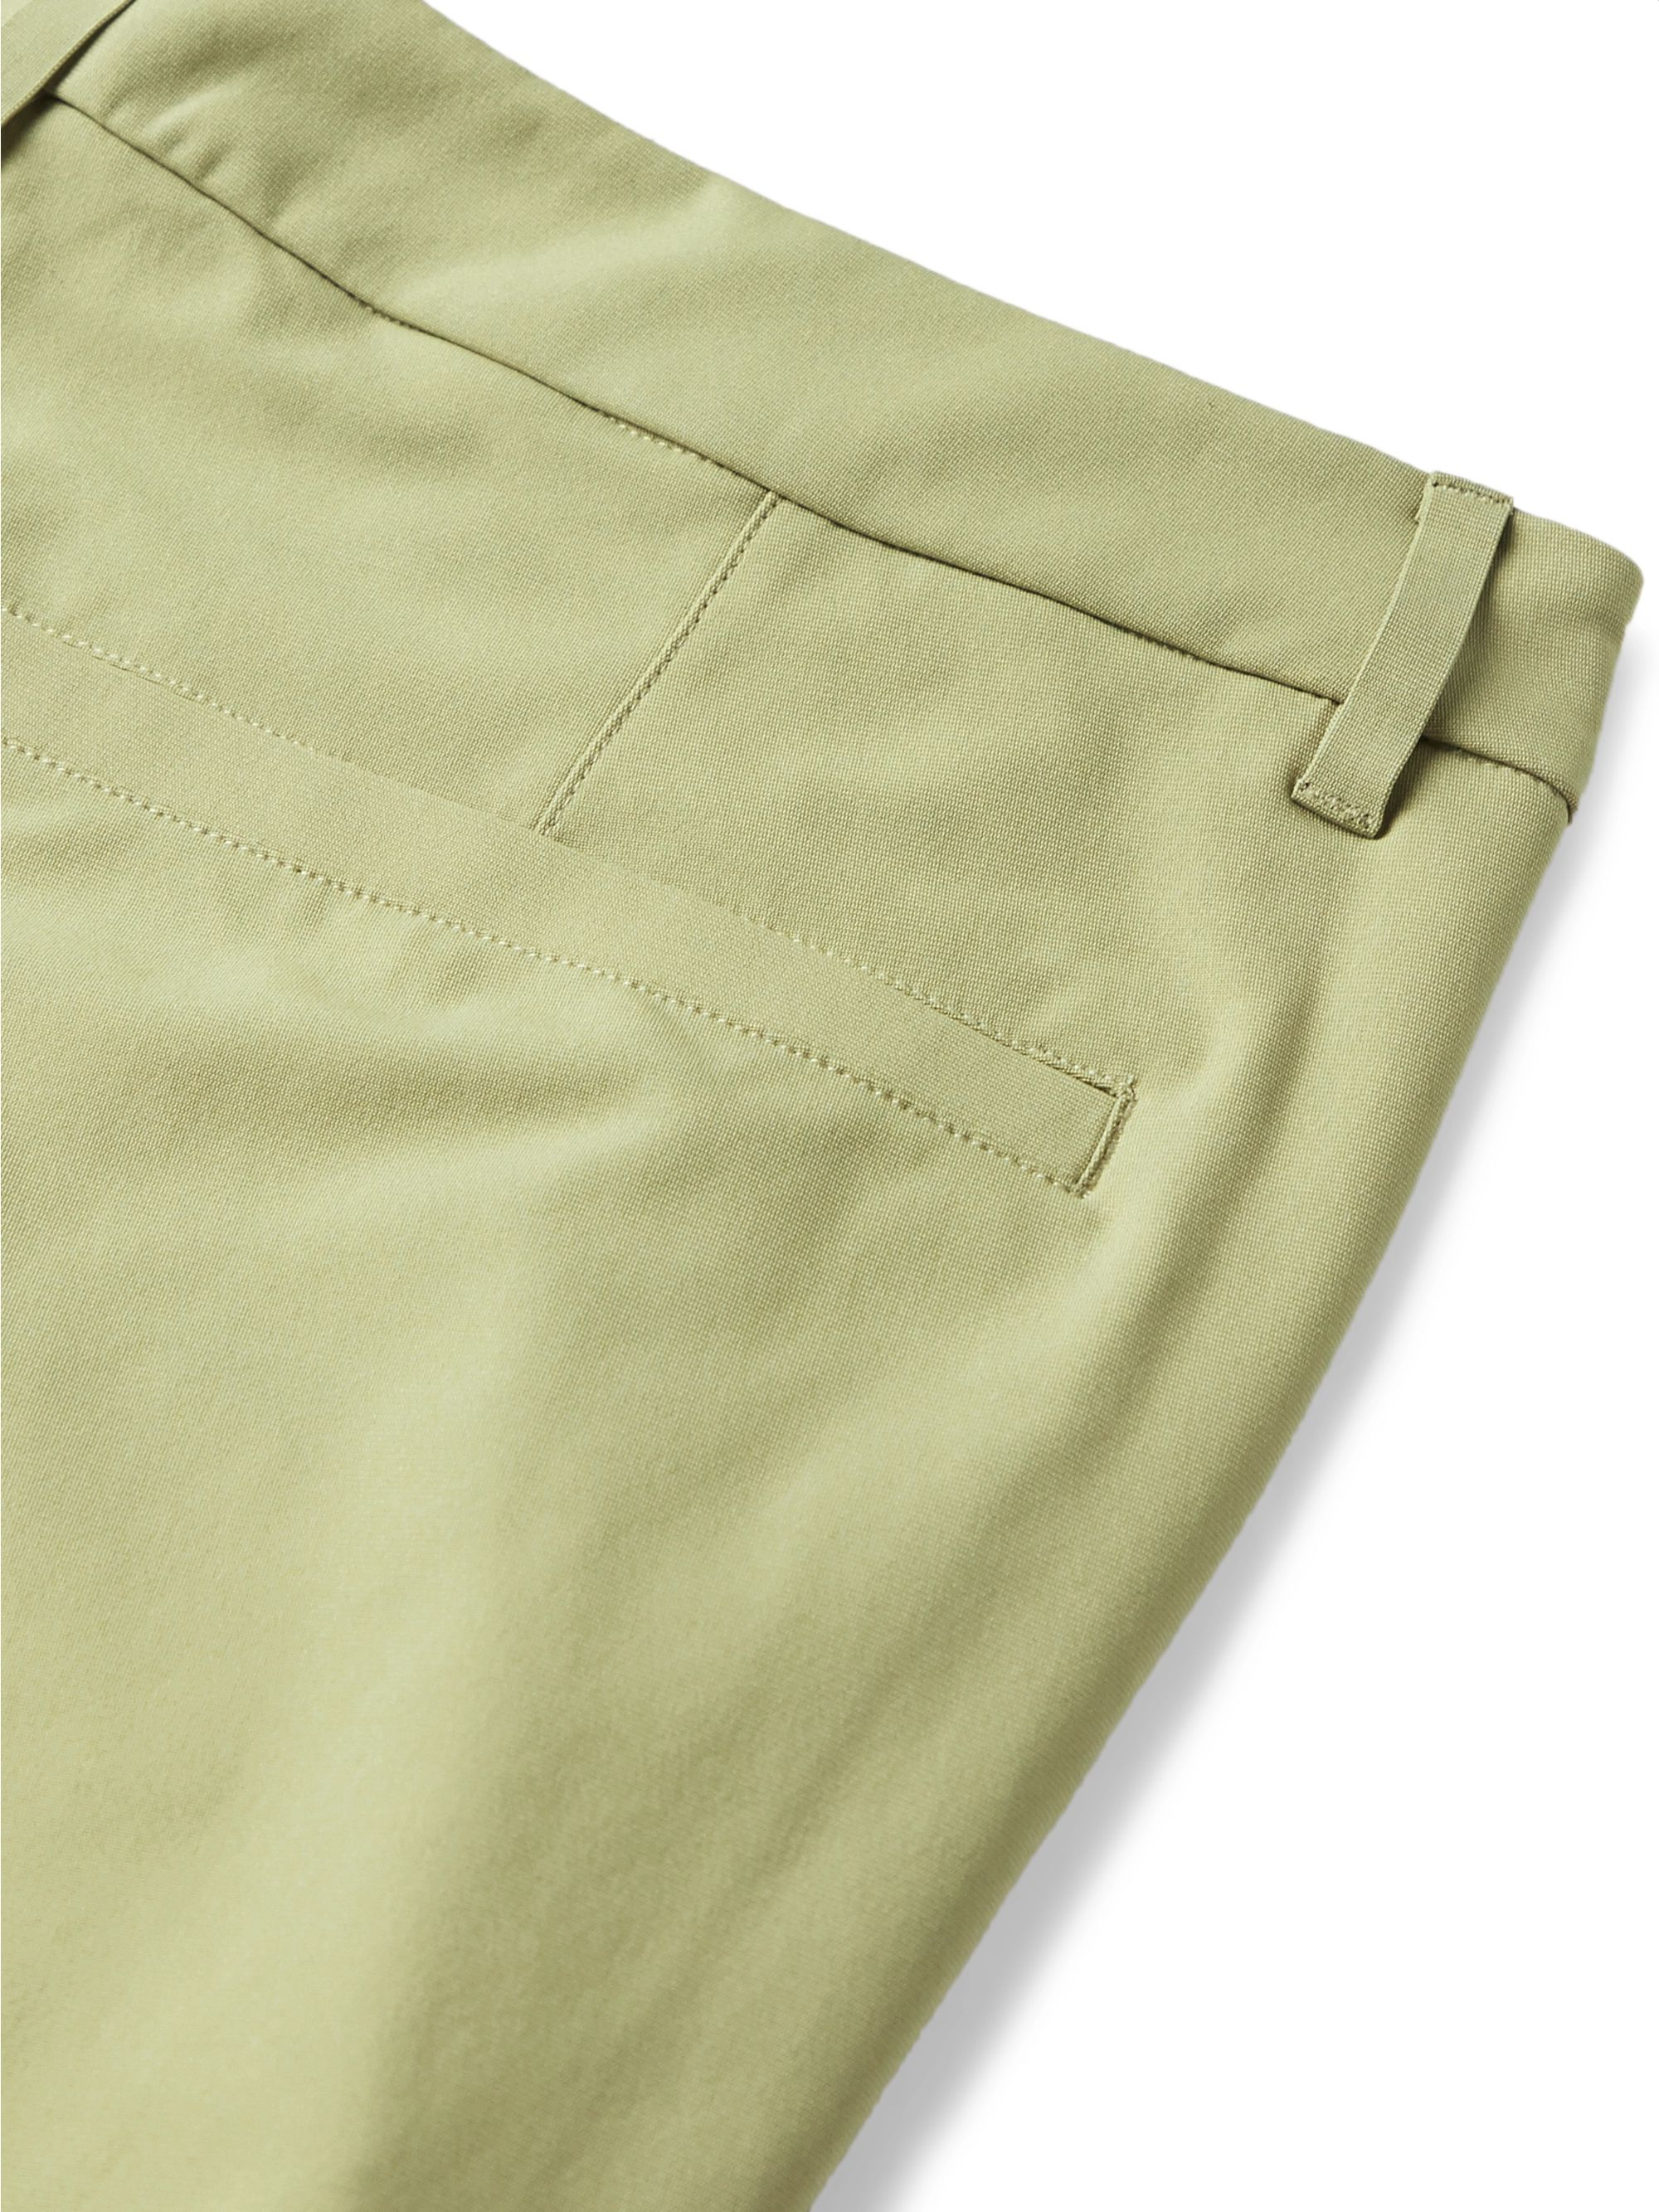 Lululemon Commission Slim-Fit Shell Golf Trousers